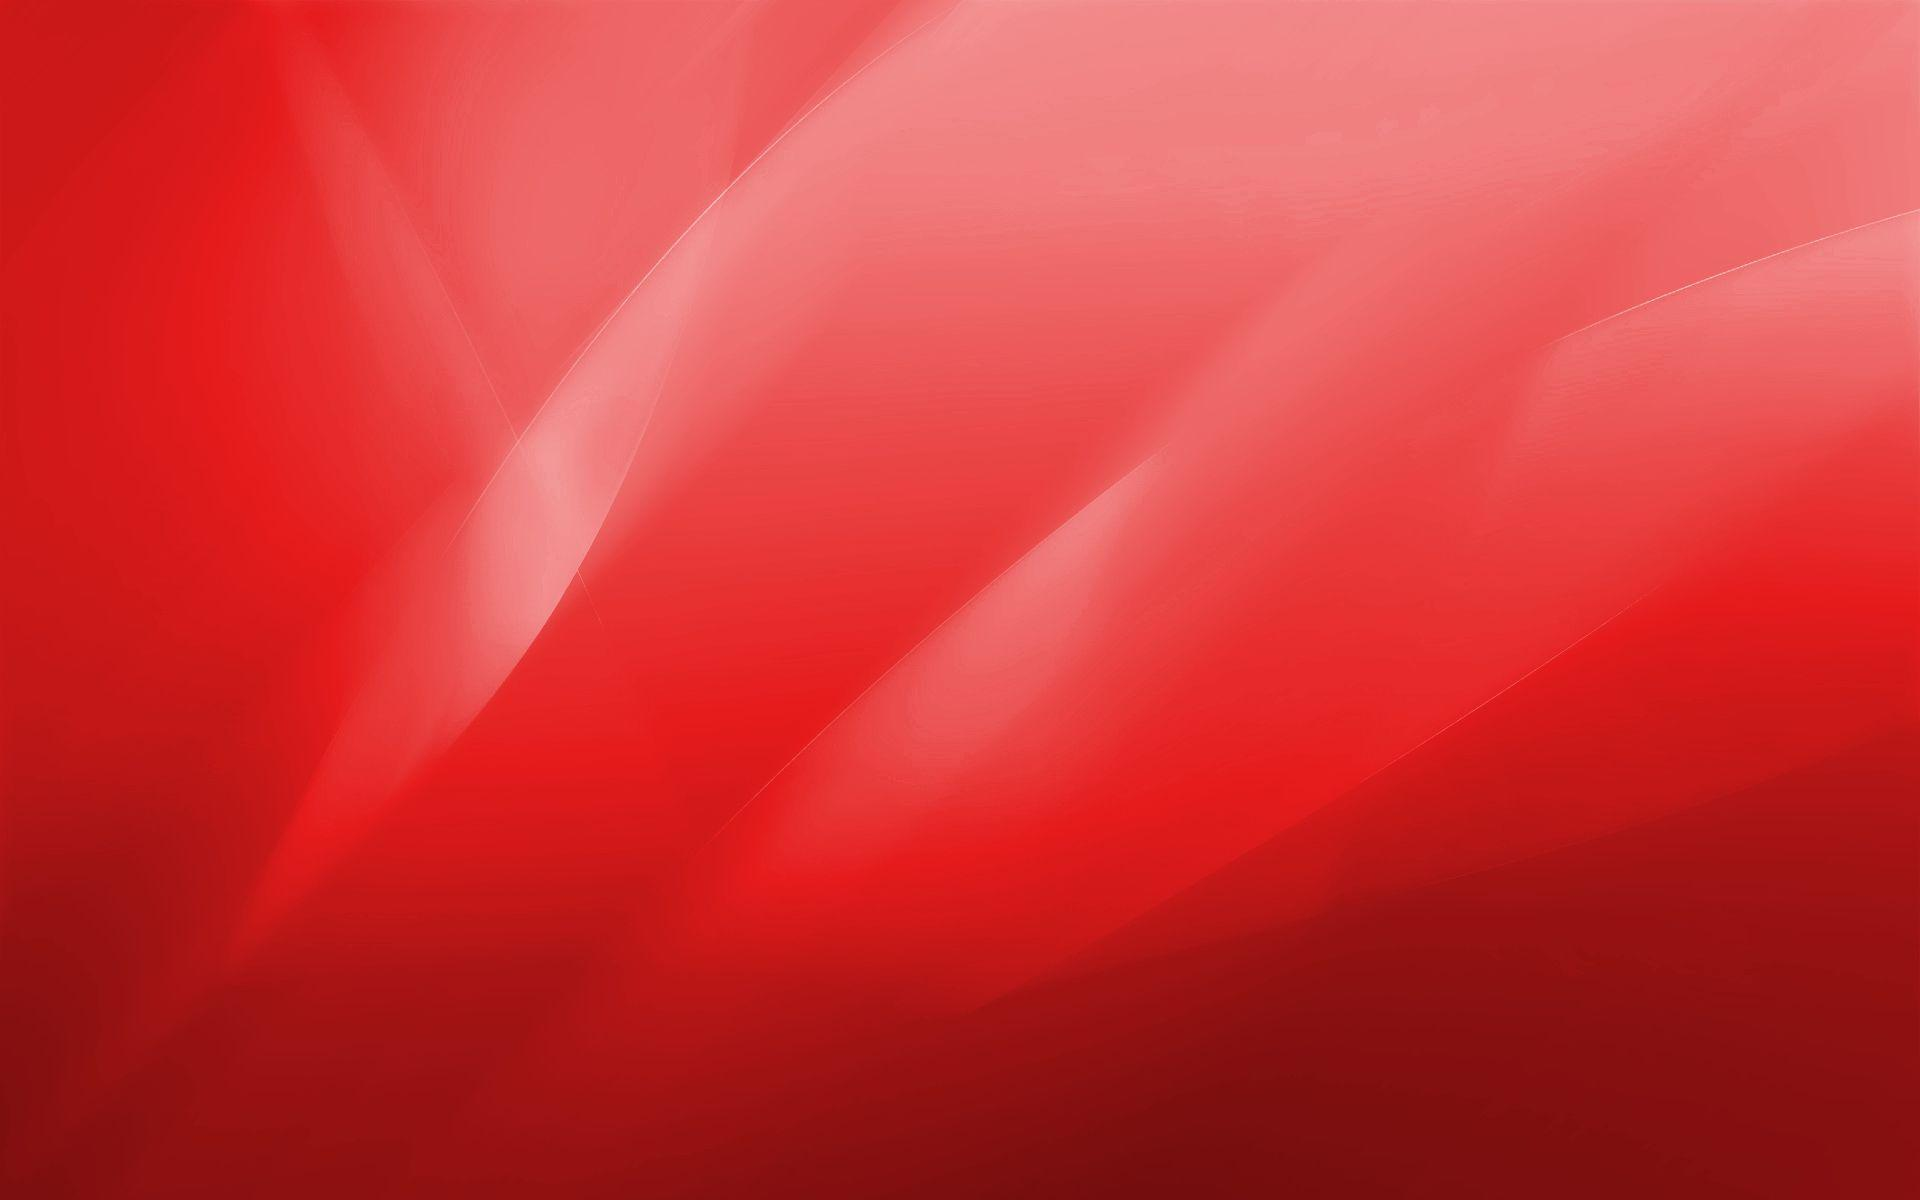 planetscapes backgrounds red - photo #9